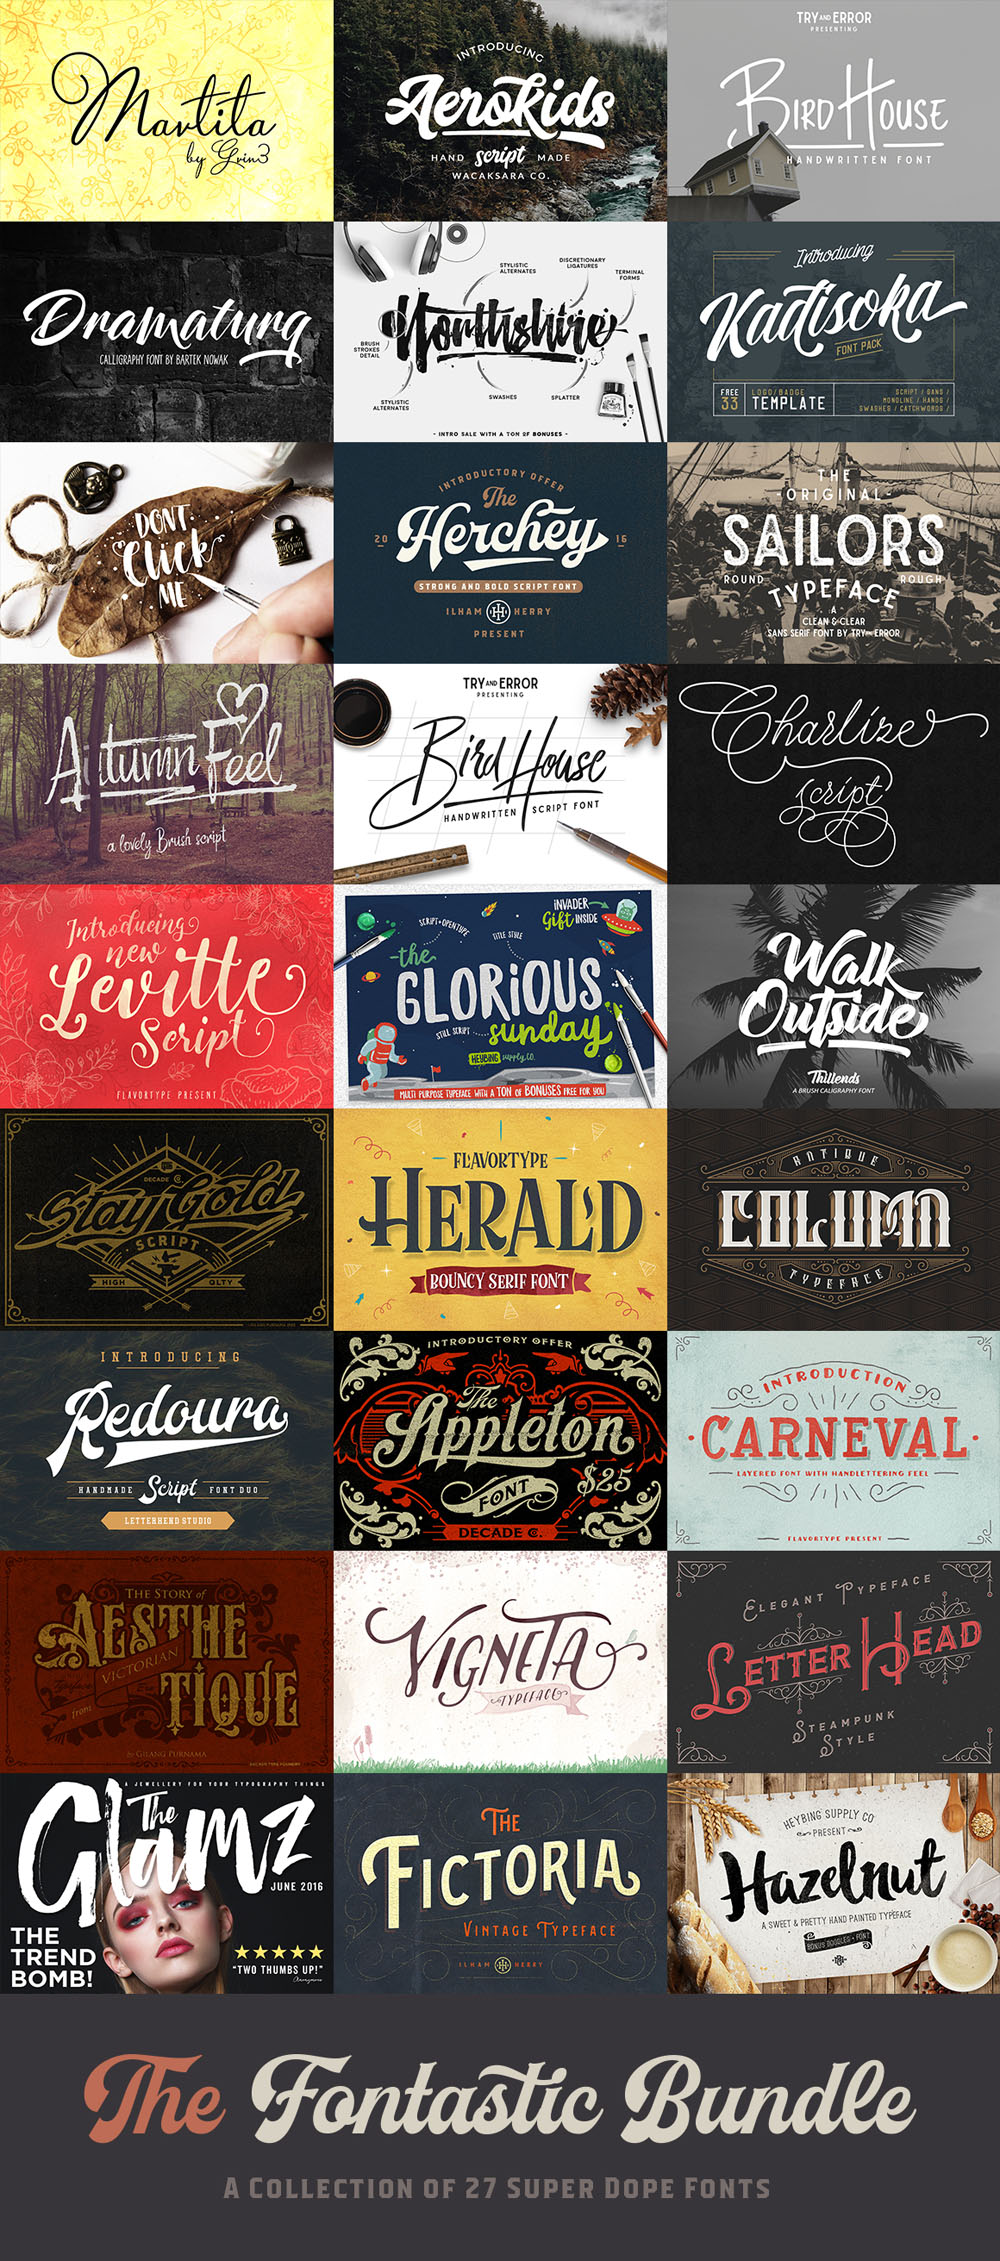 The Fontastic Bundle: 27 Fantastic Fonts - 99% Off